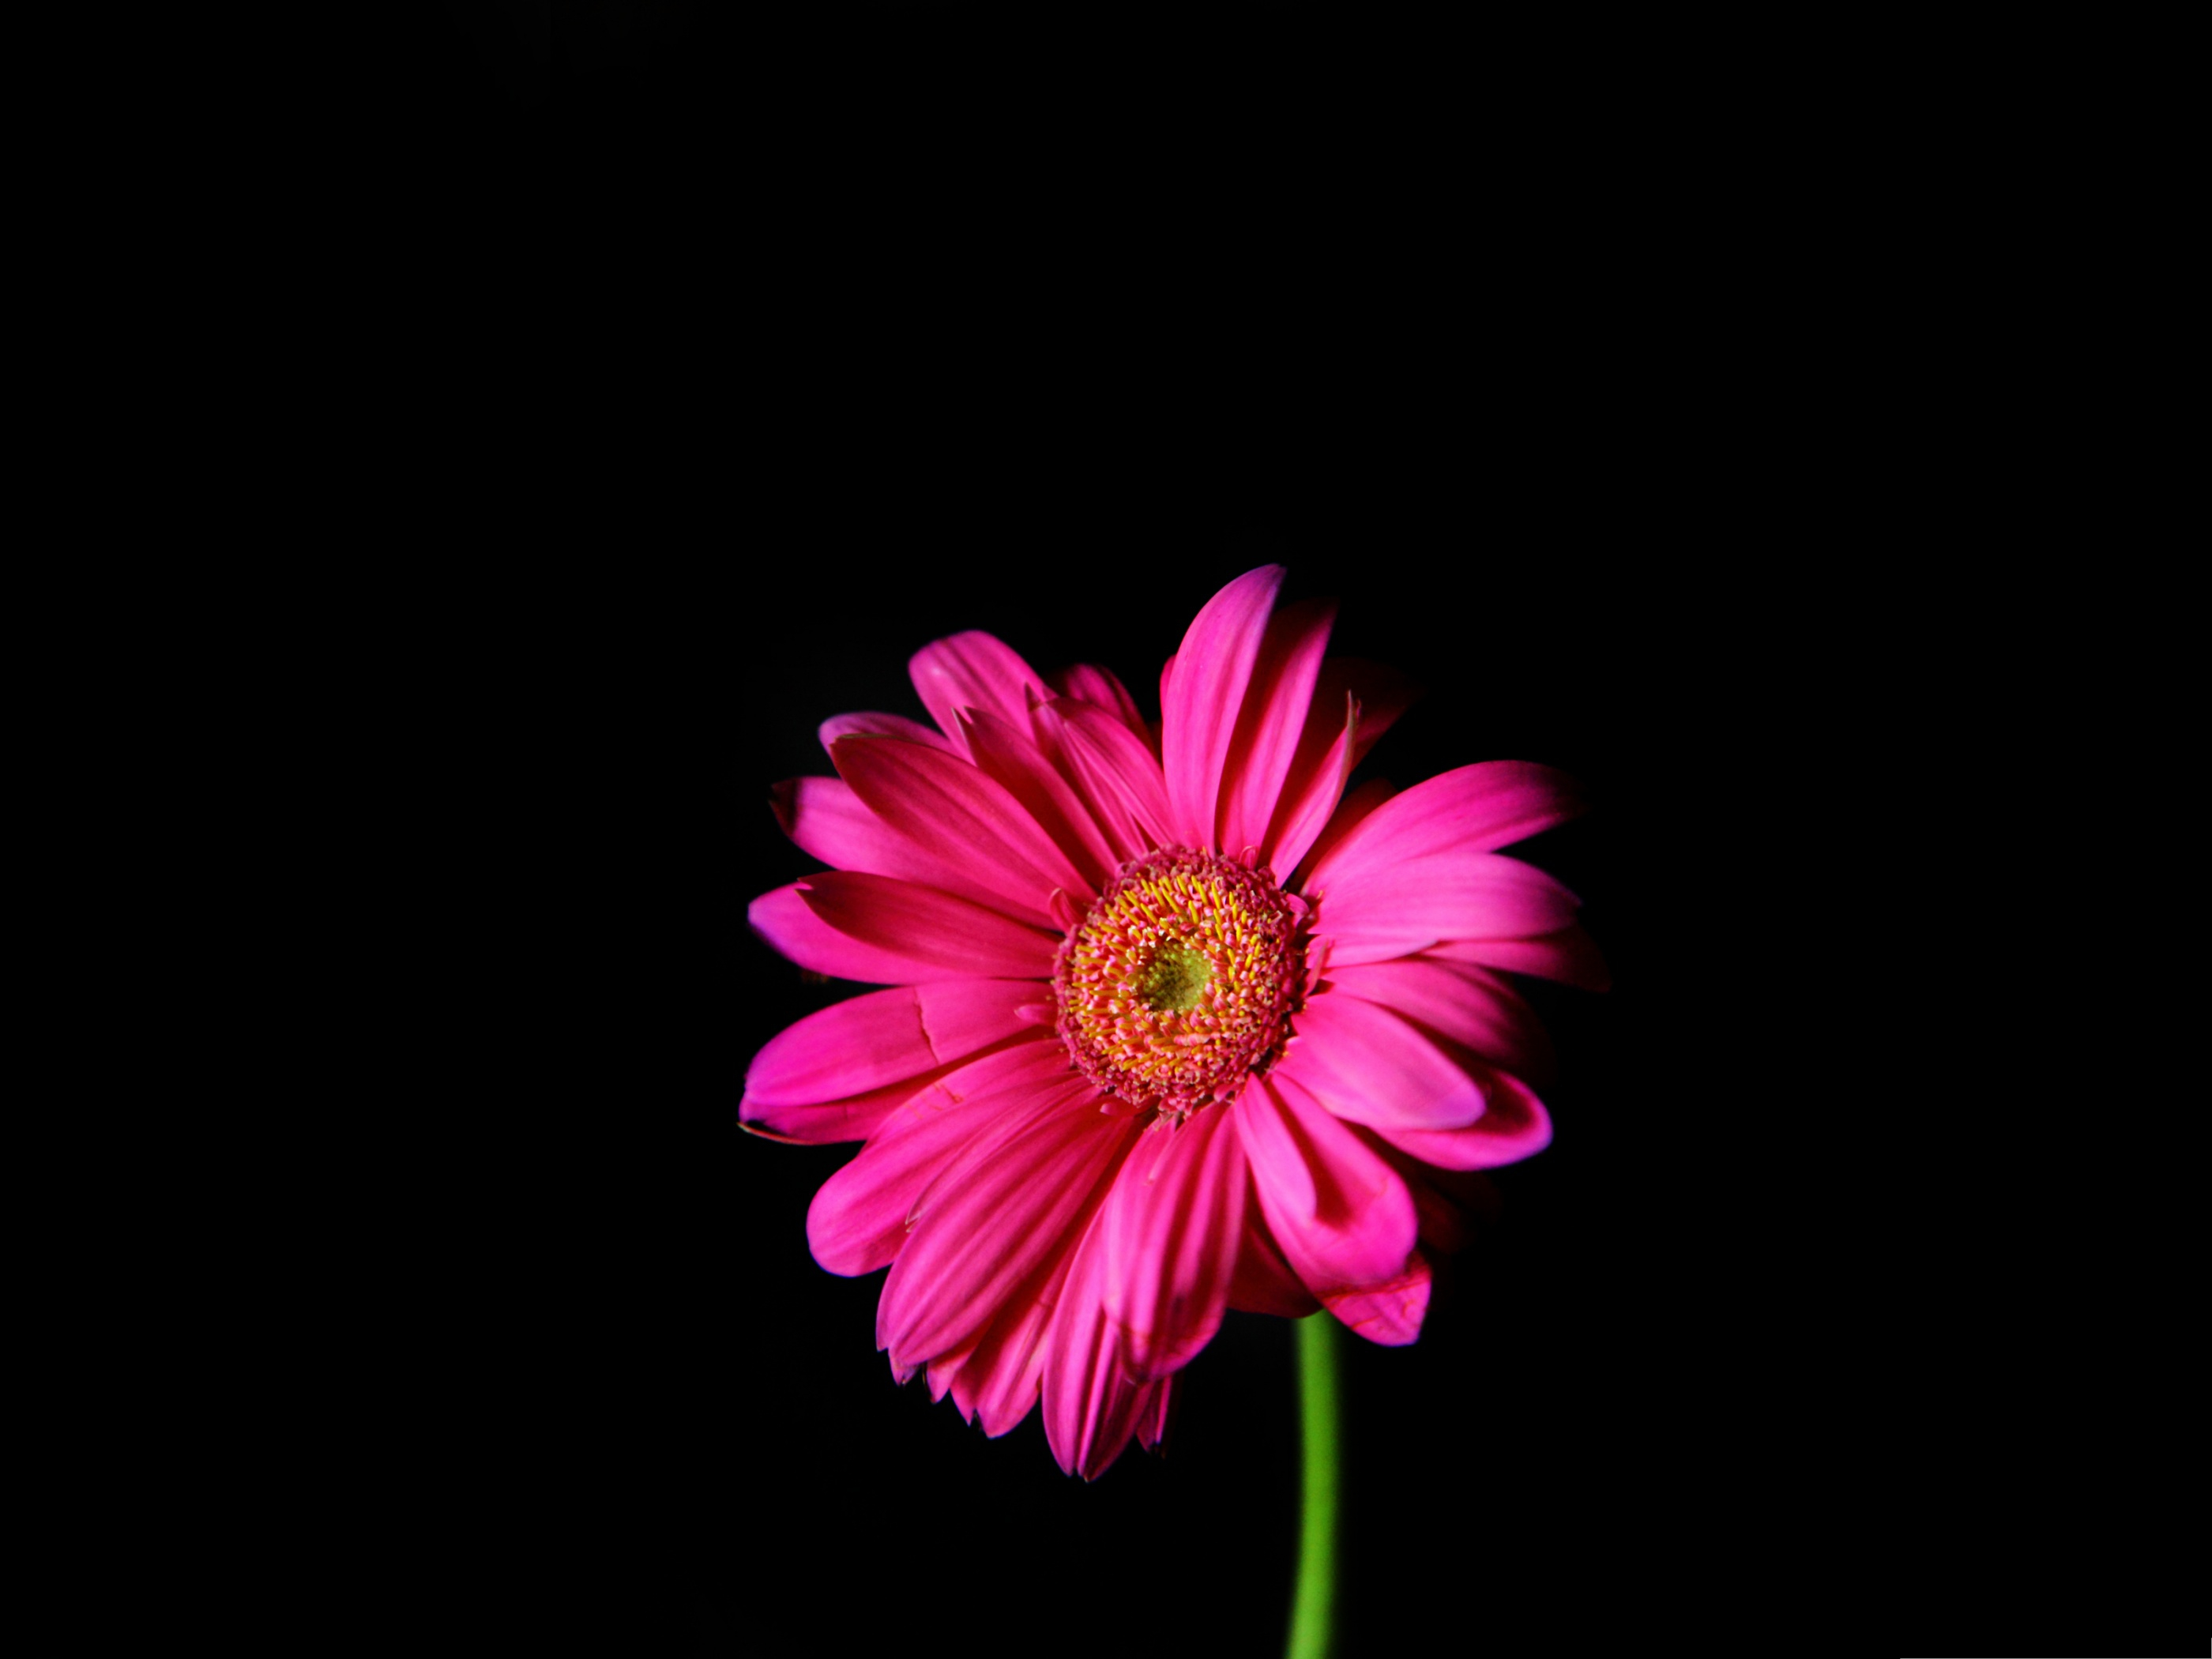 Wallpapers for Computer Free, Hot Pink Gerber Daisy on Dark ...